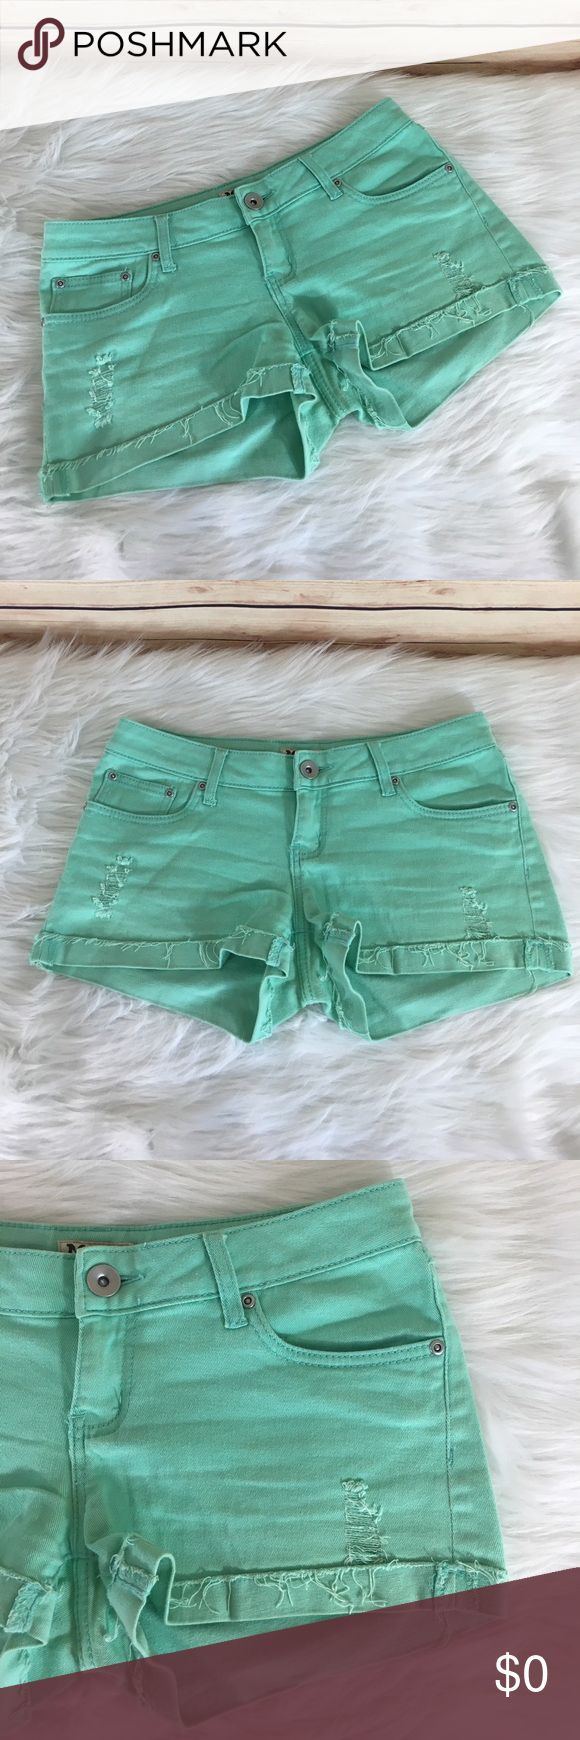 """✨ Mudd mint green Jean shorts ✨Newly listed items are priced to move.. please help me clear out my actual closet 😉 Brand: Mudd Size: 11 Color: mint green Details: four functioning pockets, manufacturer rips on front, cuffs are sewn  Measurements: waist- 15.5"""", inseam- 2.5"""", outseam- 10"""" Condition: preloved: good *slight discoloration/marks in a few areas but hard to see  ✨Build a bundle with all your likes and use the automatic bundle discount -or- make me a bundle offer✨ Mudd Shorts Jean…"""